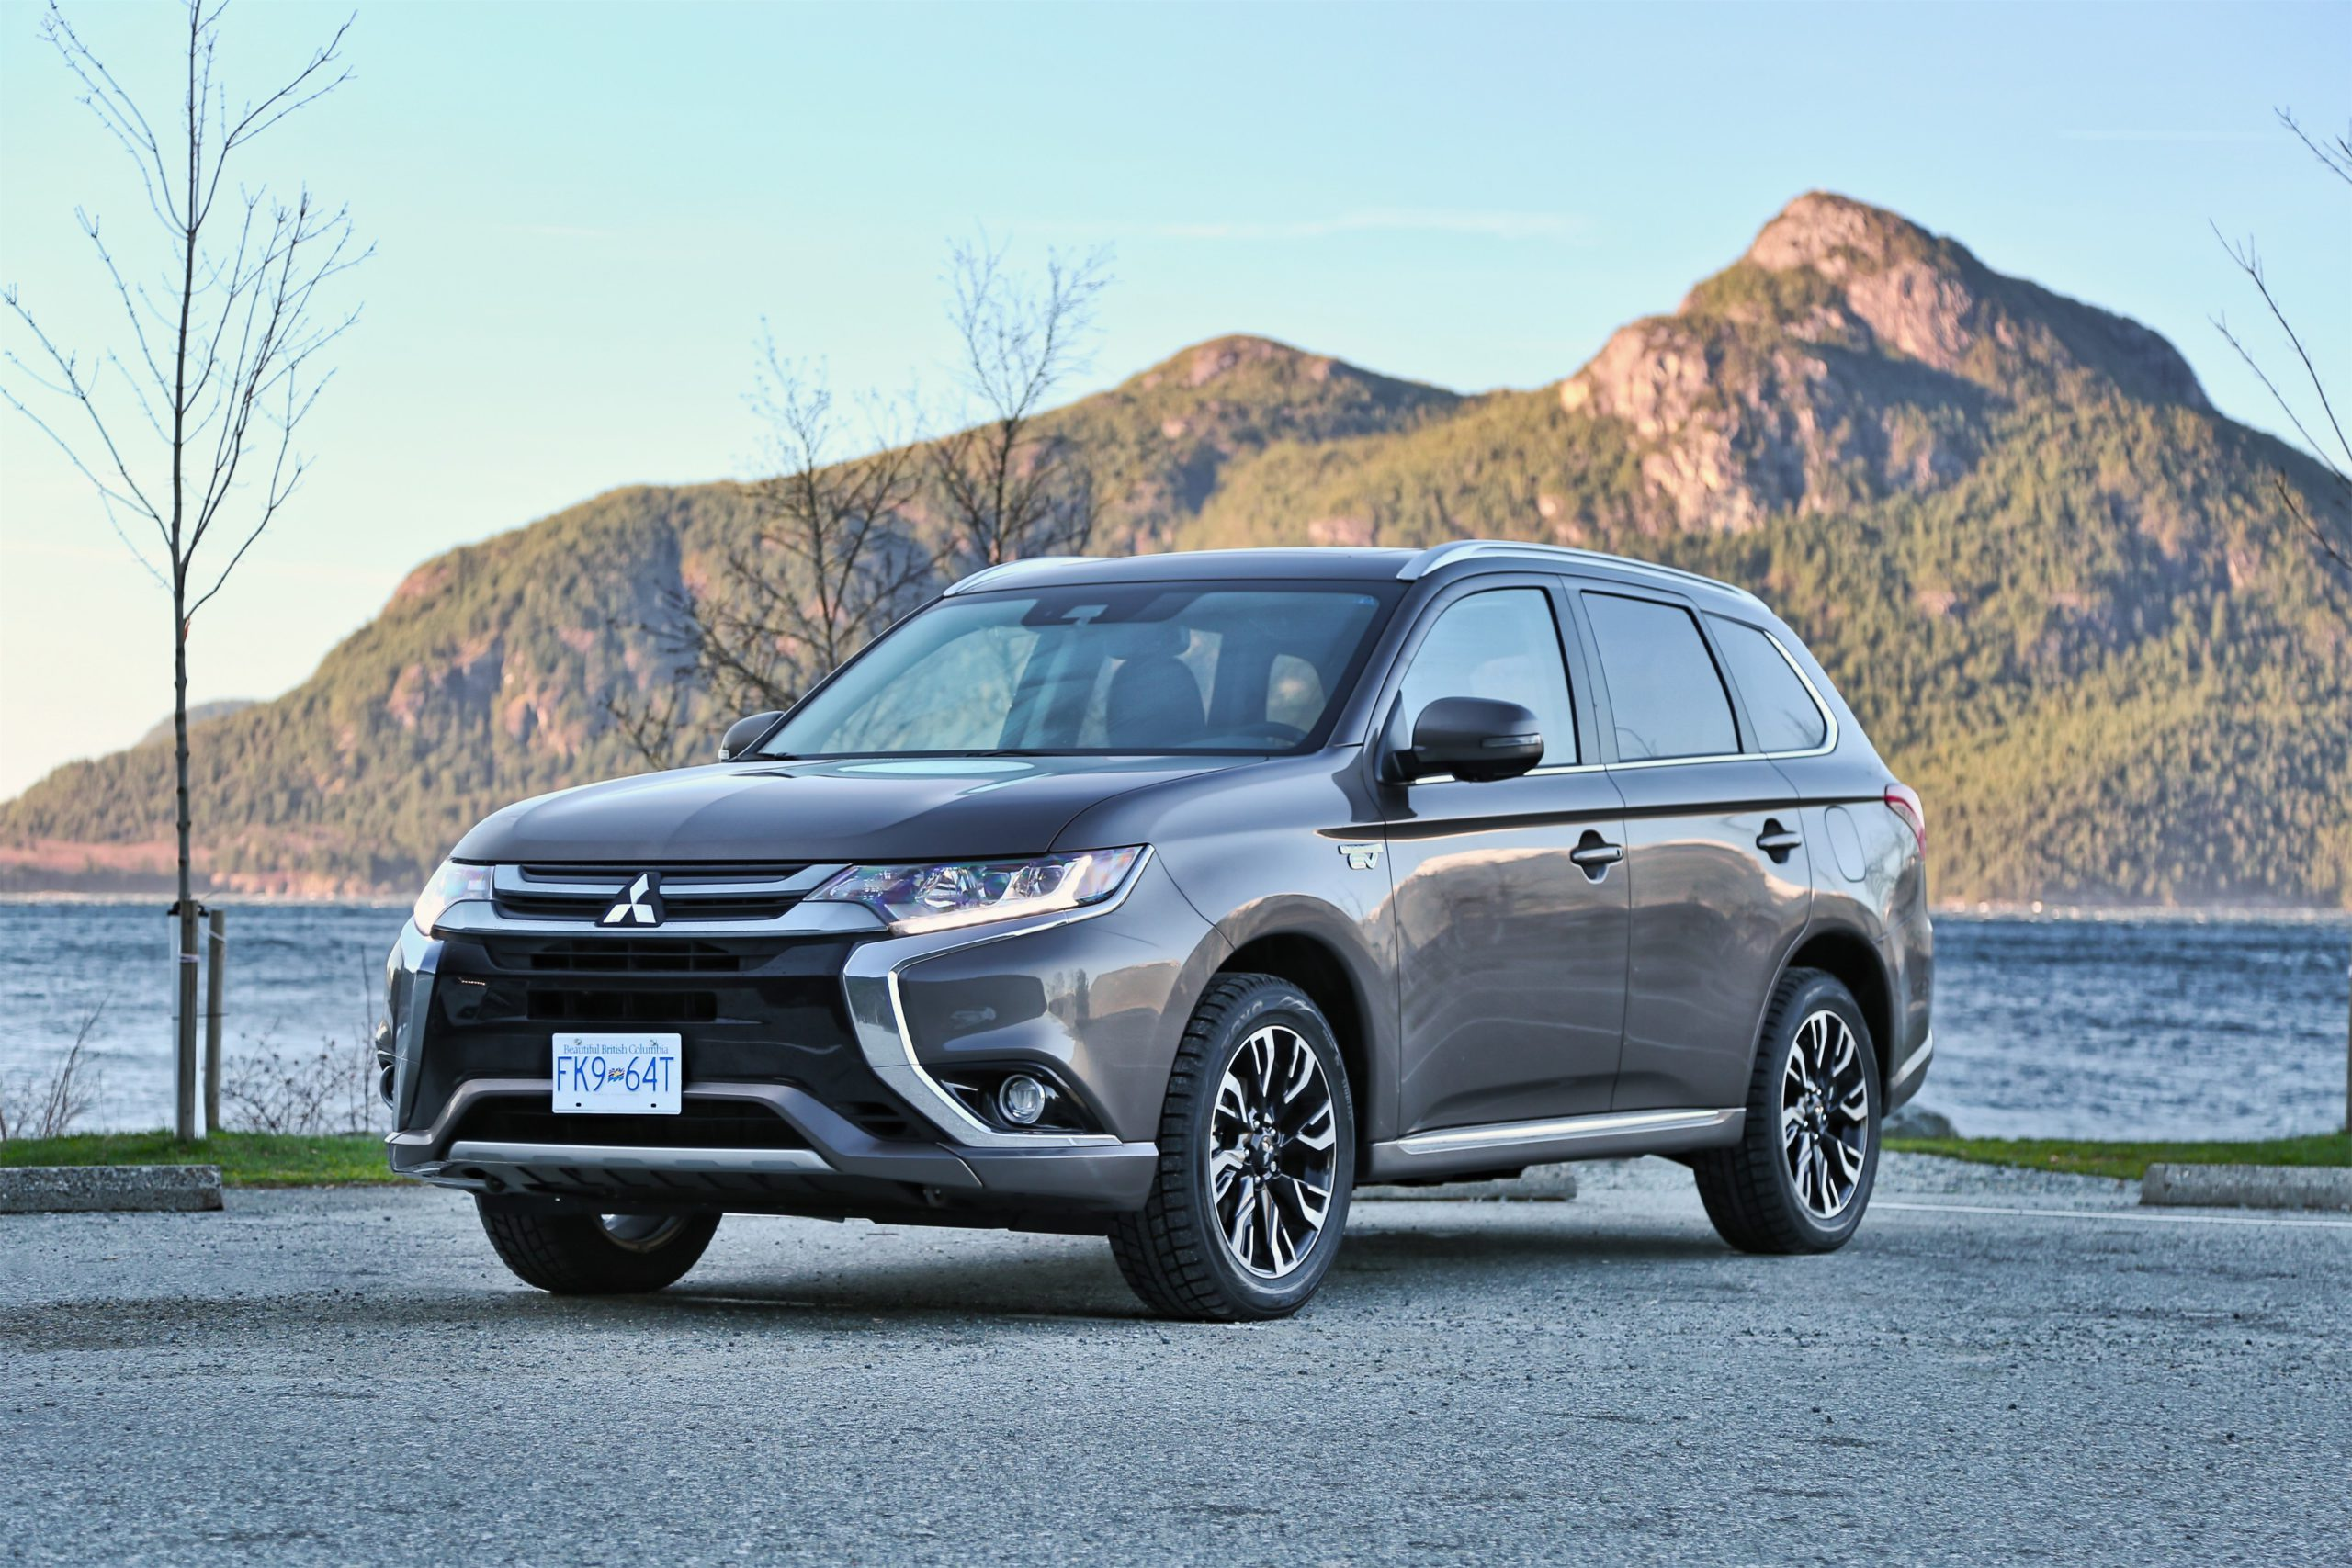 ALL-NEW MITSUBISHI OUTLANDER PHEV IN DEALERSHIPS